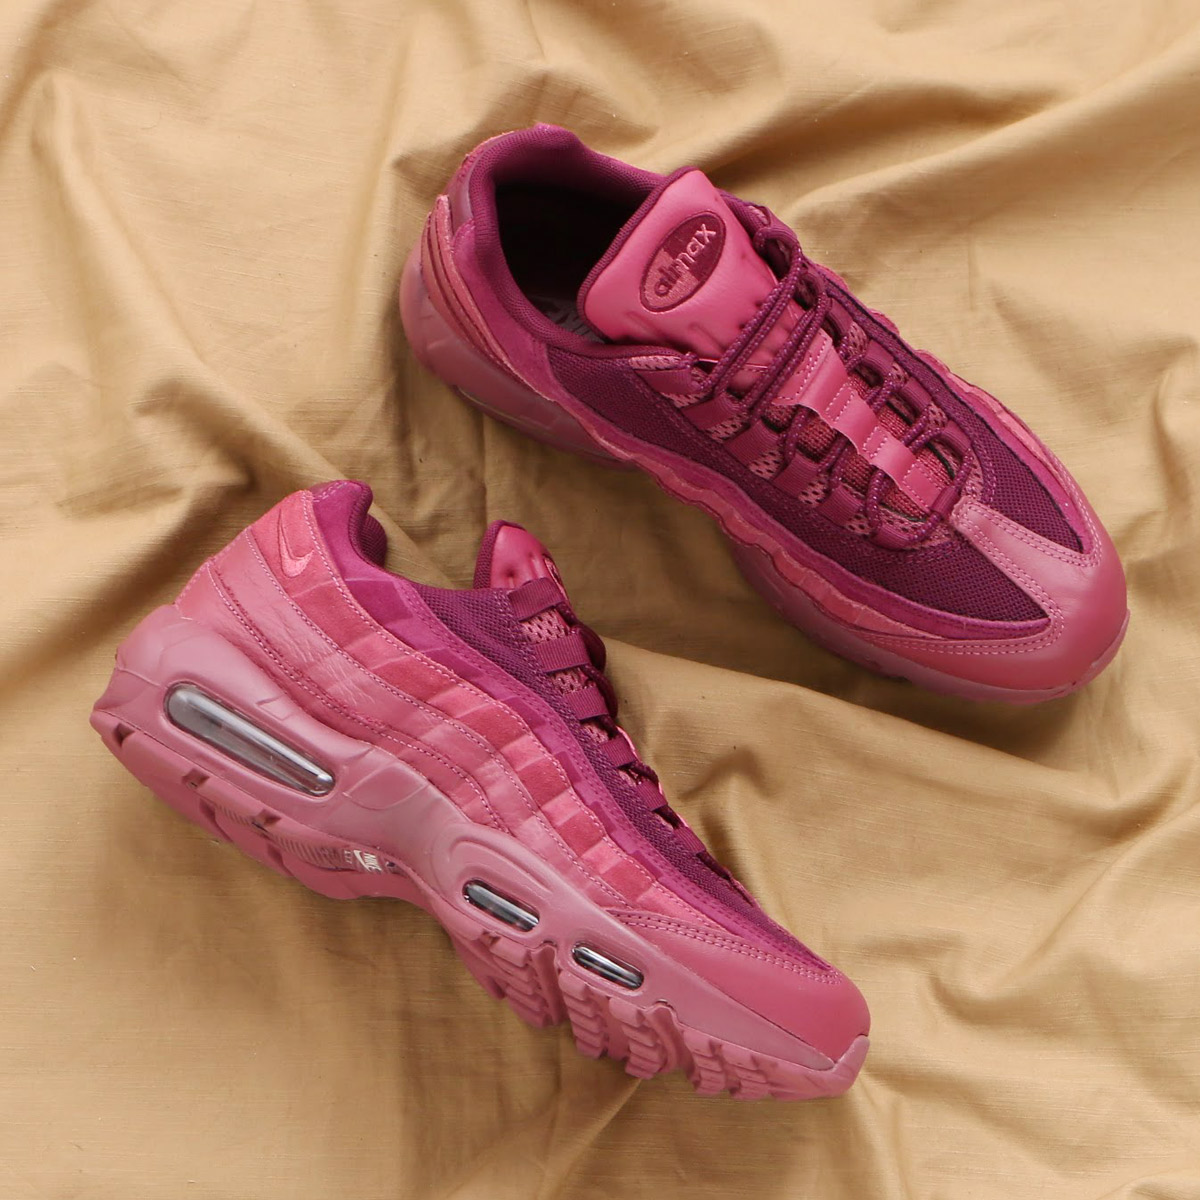 competitive price 5fac1 e4806 maximum point 10 times that is targeted for all articles! NIKE AIR MAX 95  PRM (Kie Ney AMAX 95 premium) (VINTAGE WINEVINTAGE WINE-BORDEAUX) 18SP-S